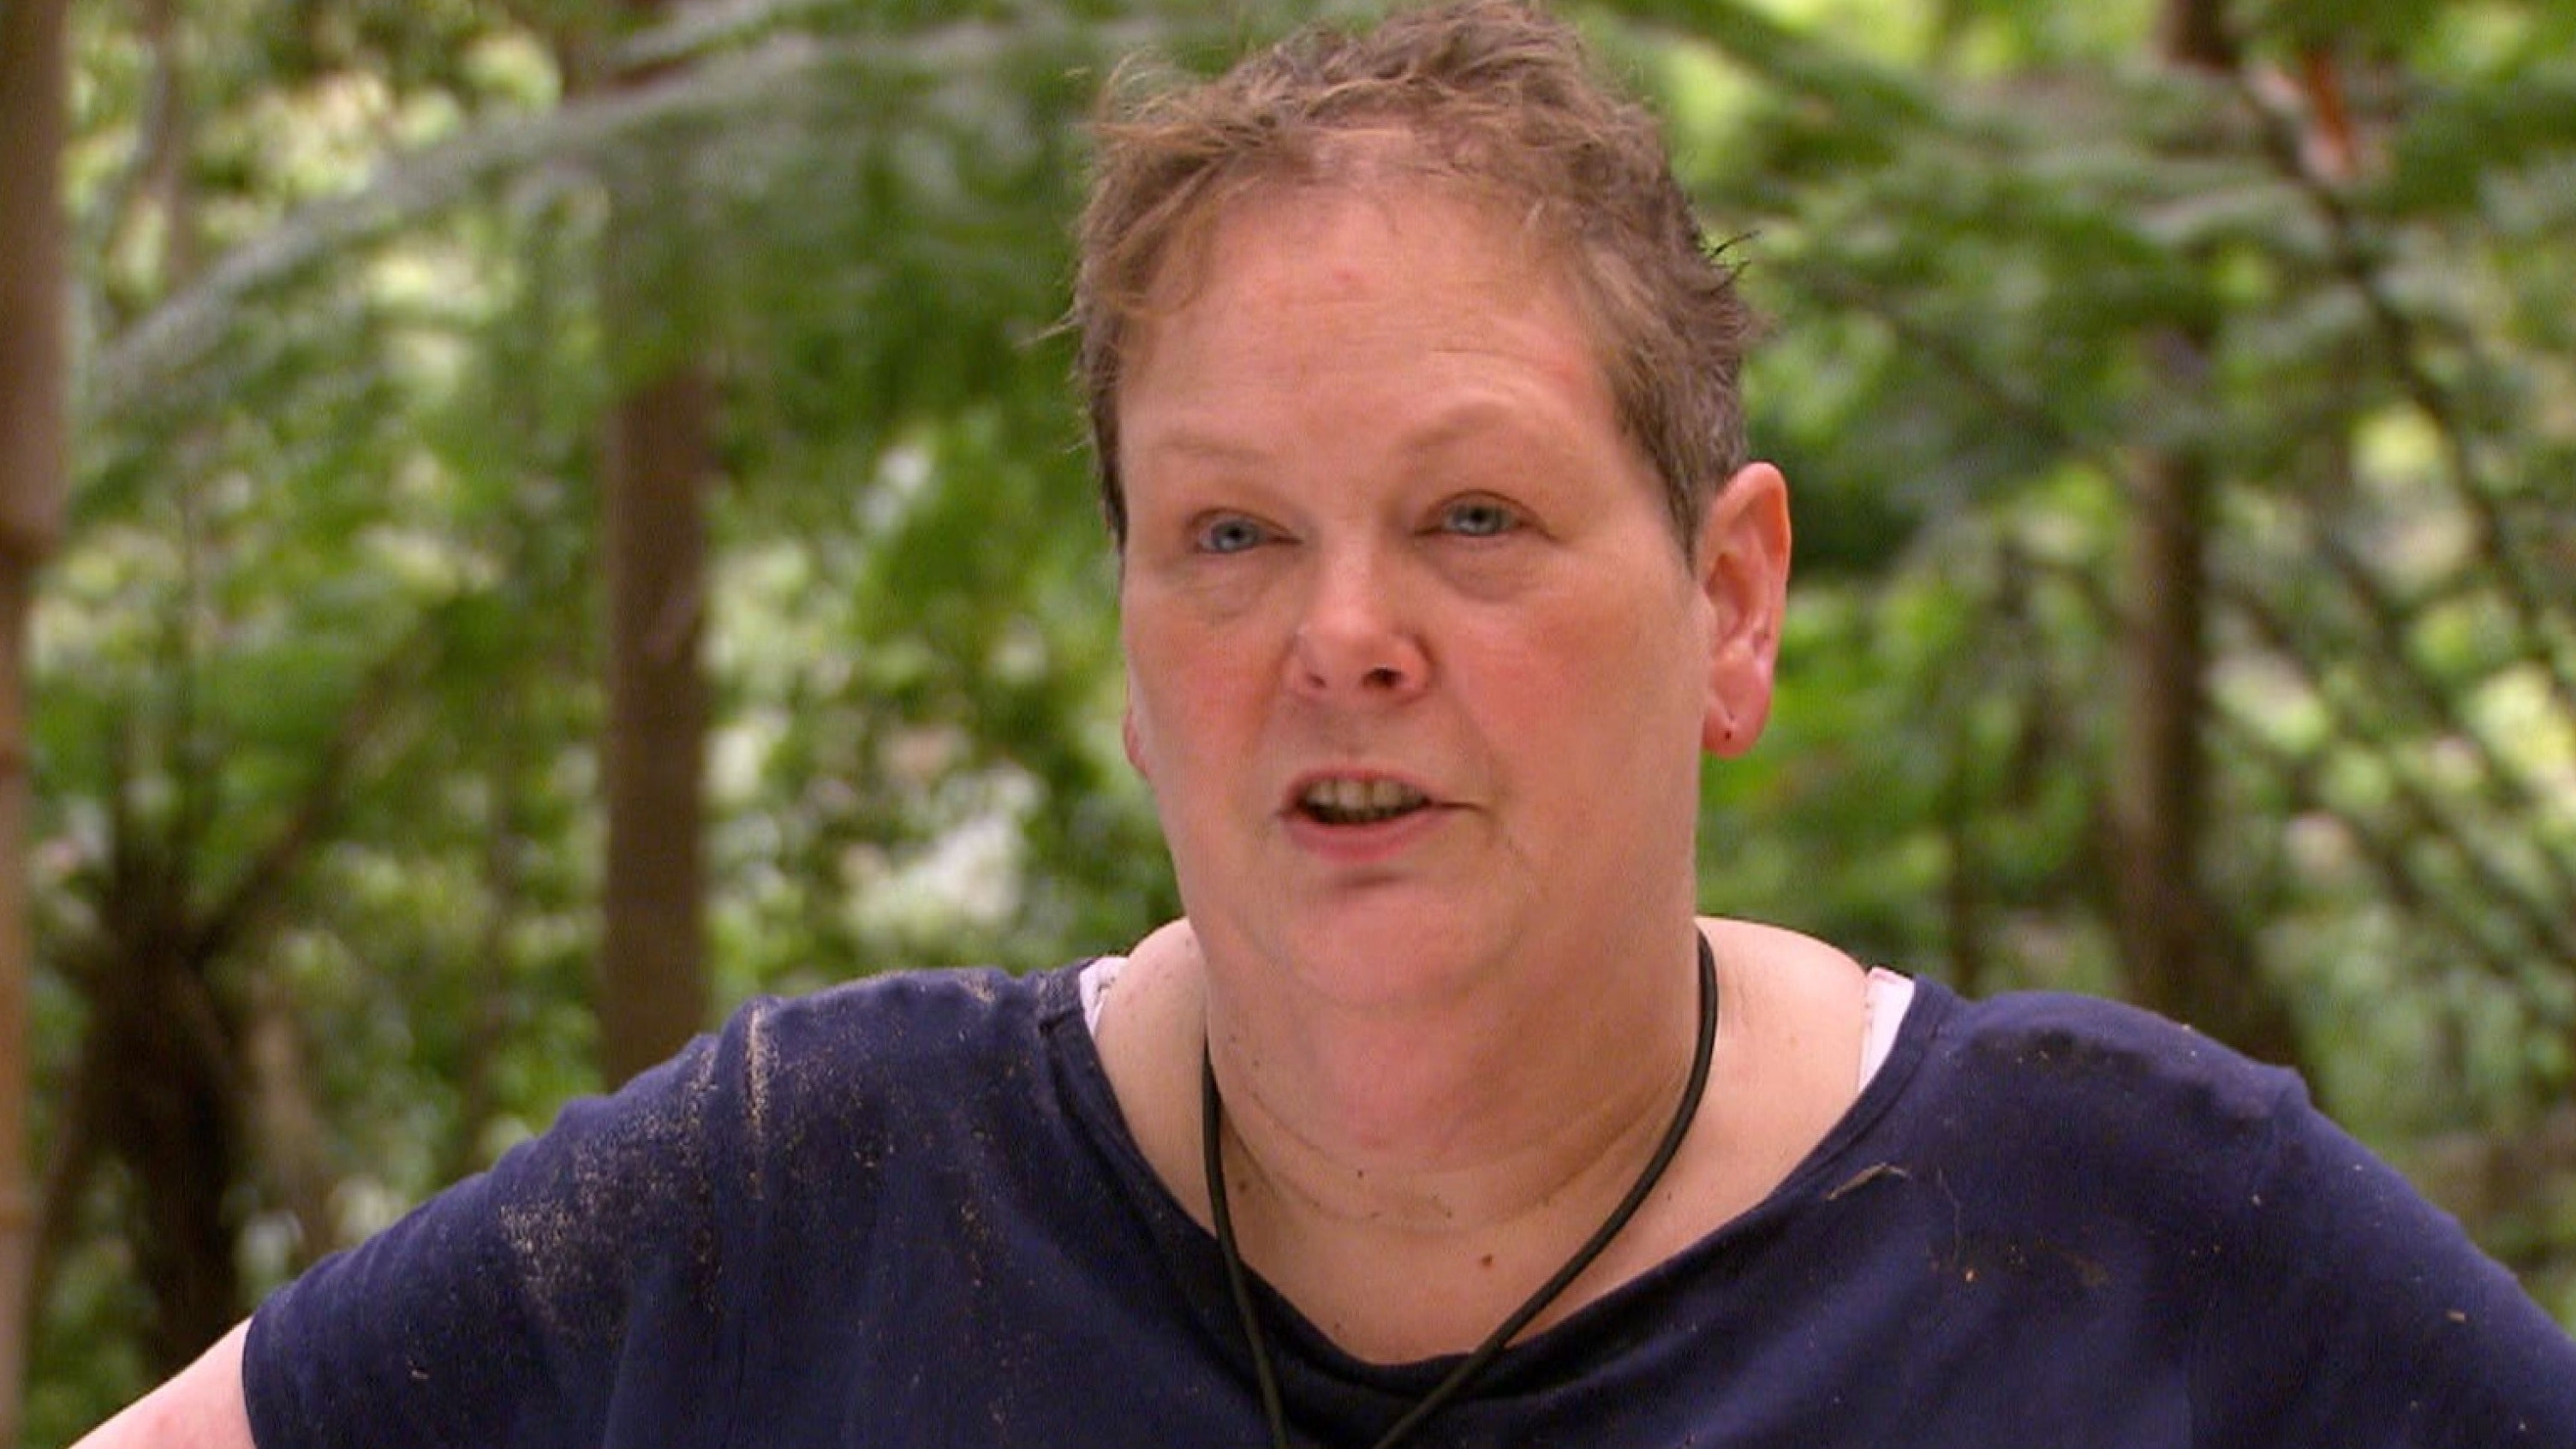 Technical Issues 'Ruined' Anne Hegerty's Emotional I'm A Celeb Exit